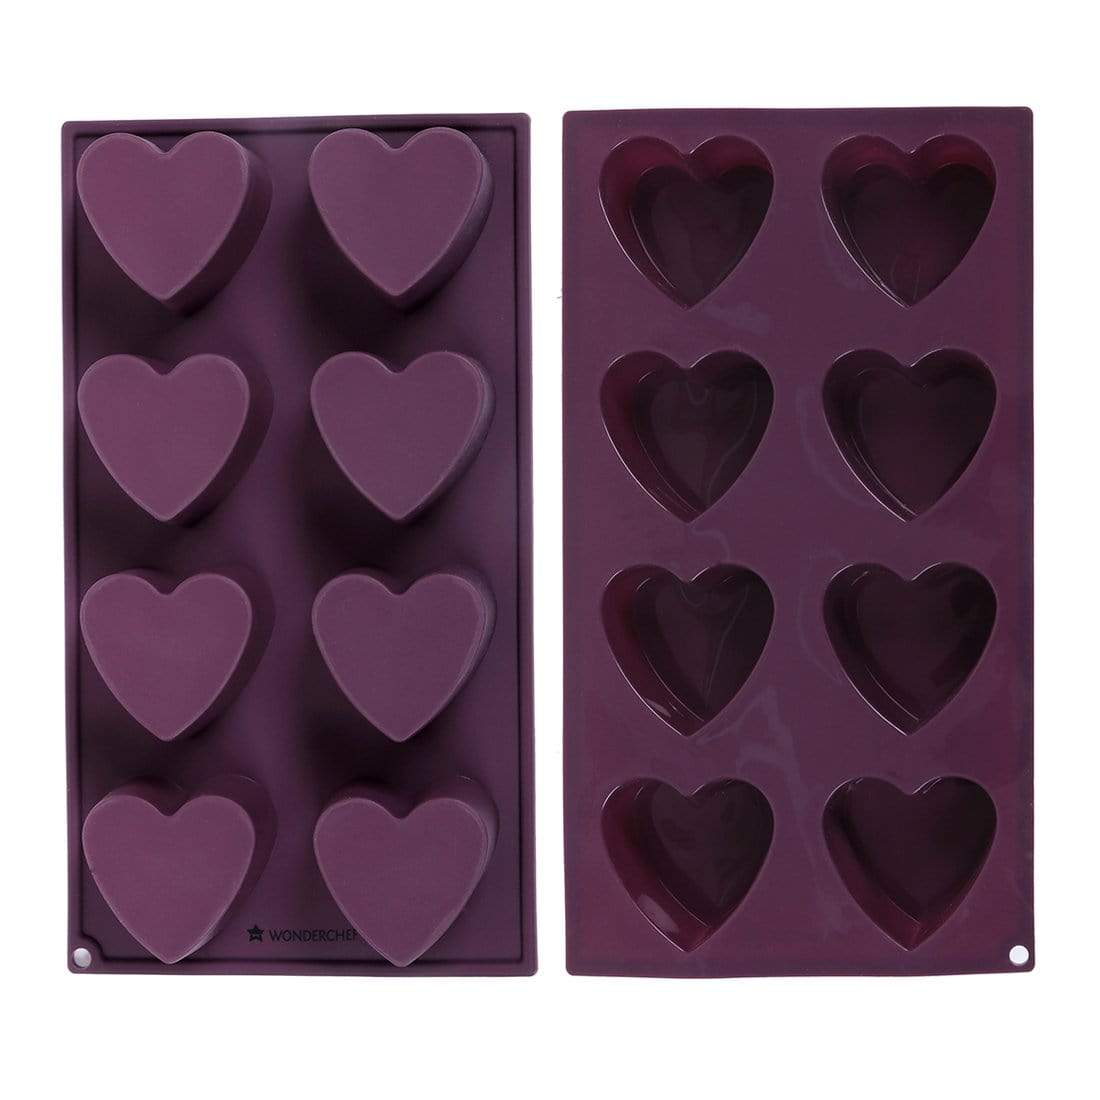 Wonderchef Bakeware Wonderchef Silicone Heart Cake Mould